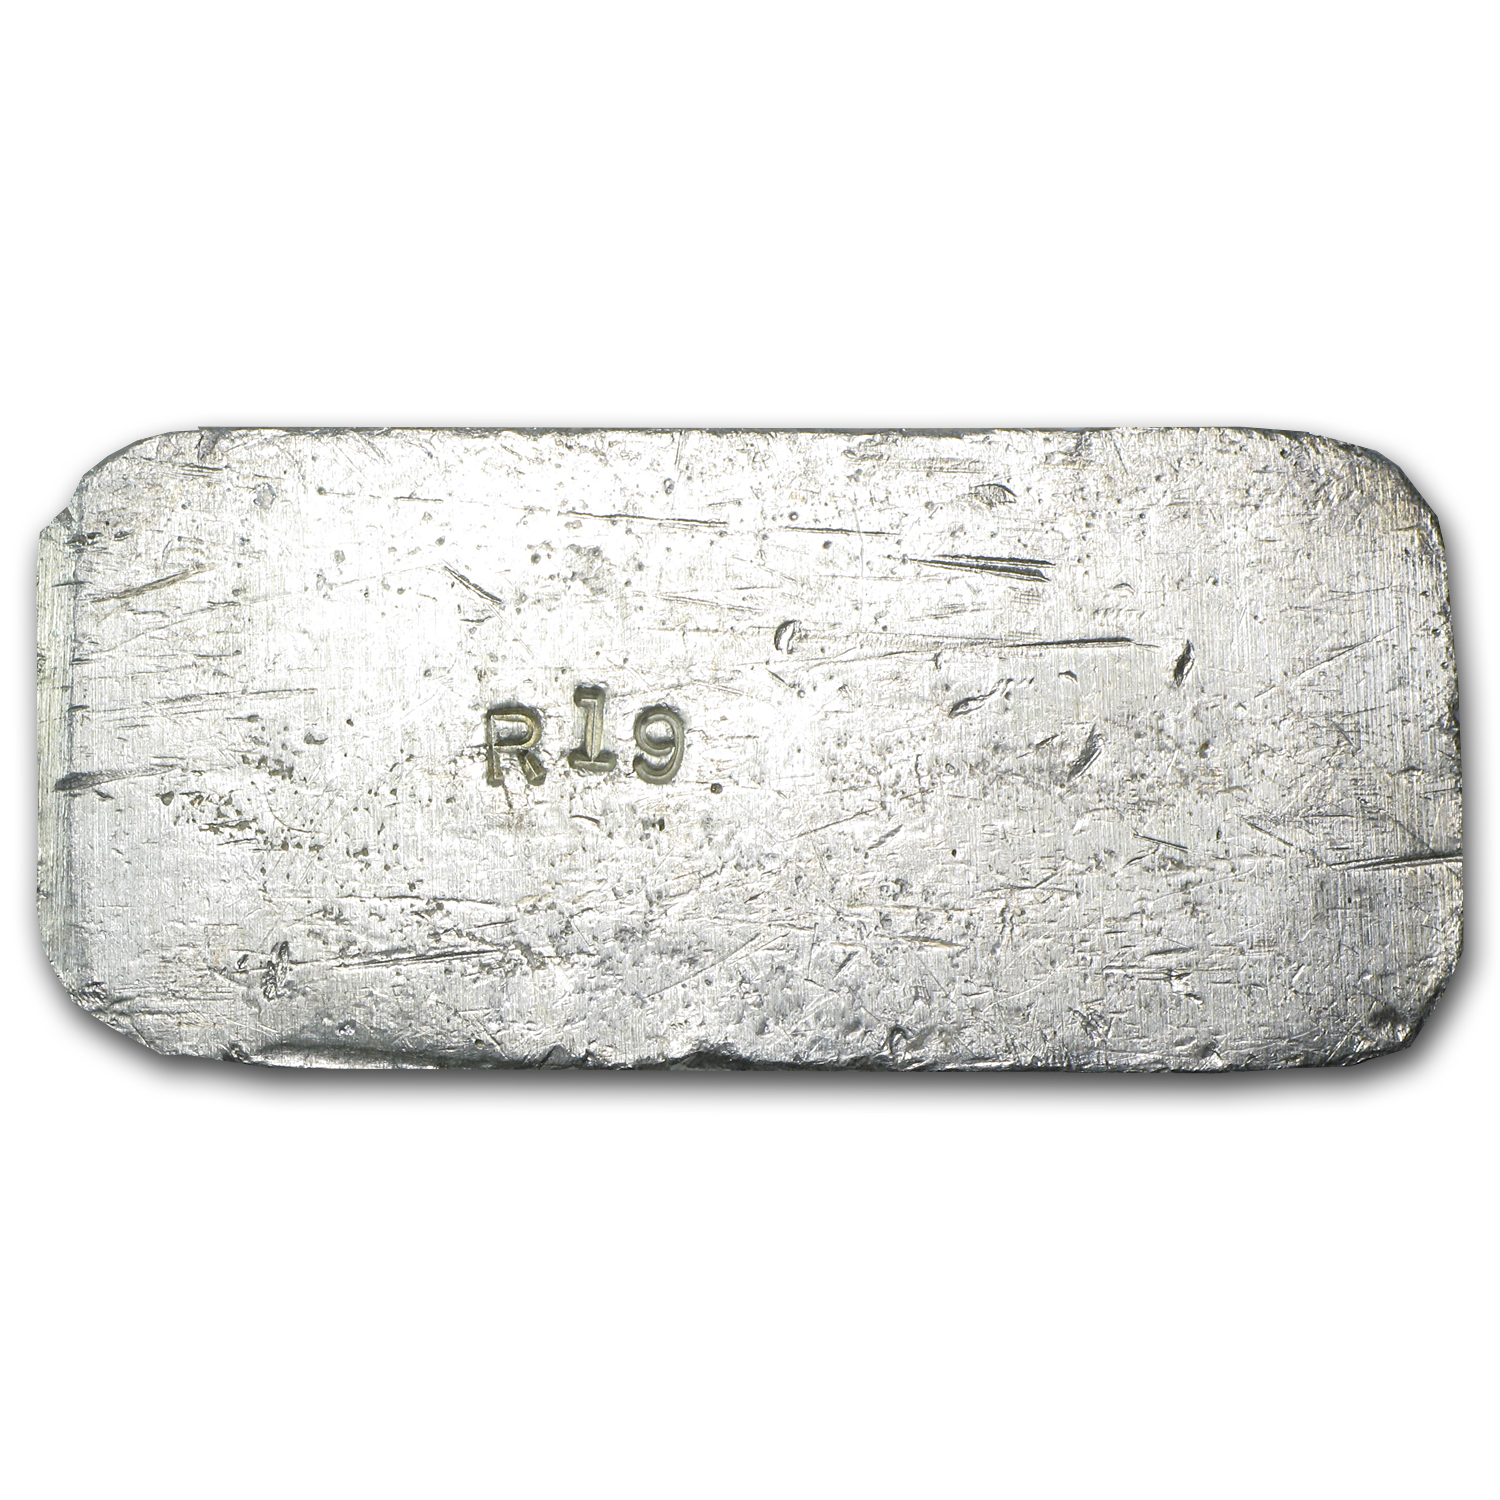 10.99 oz Silver Bars - Great Western Coin & Bullion